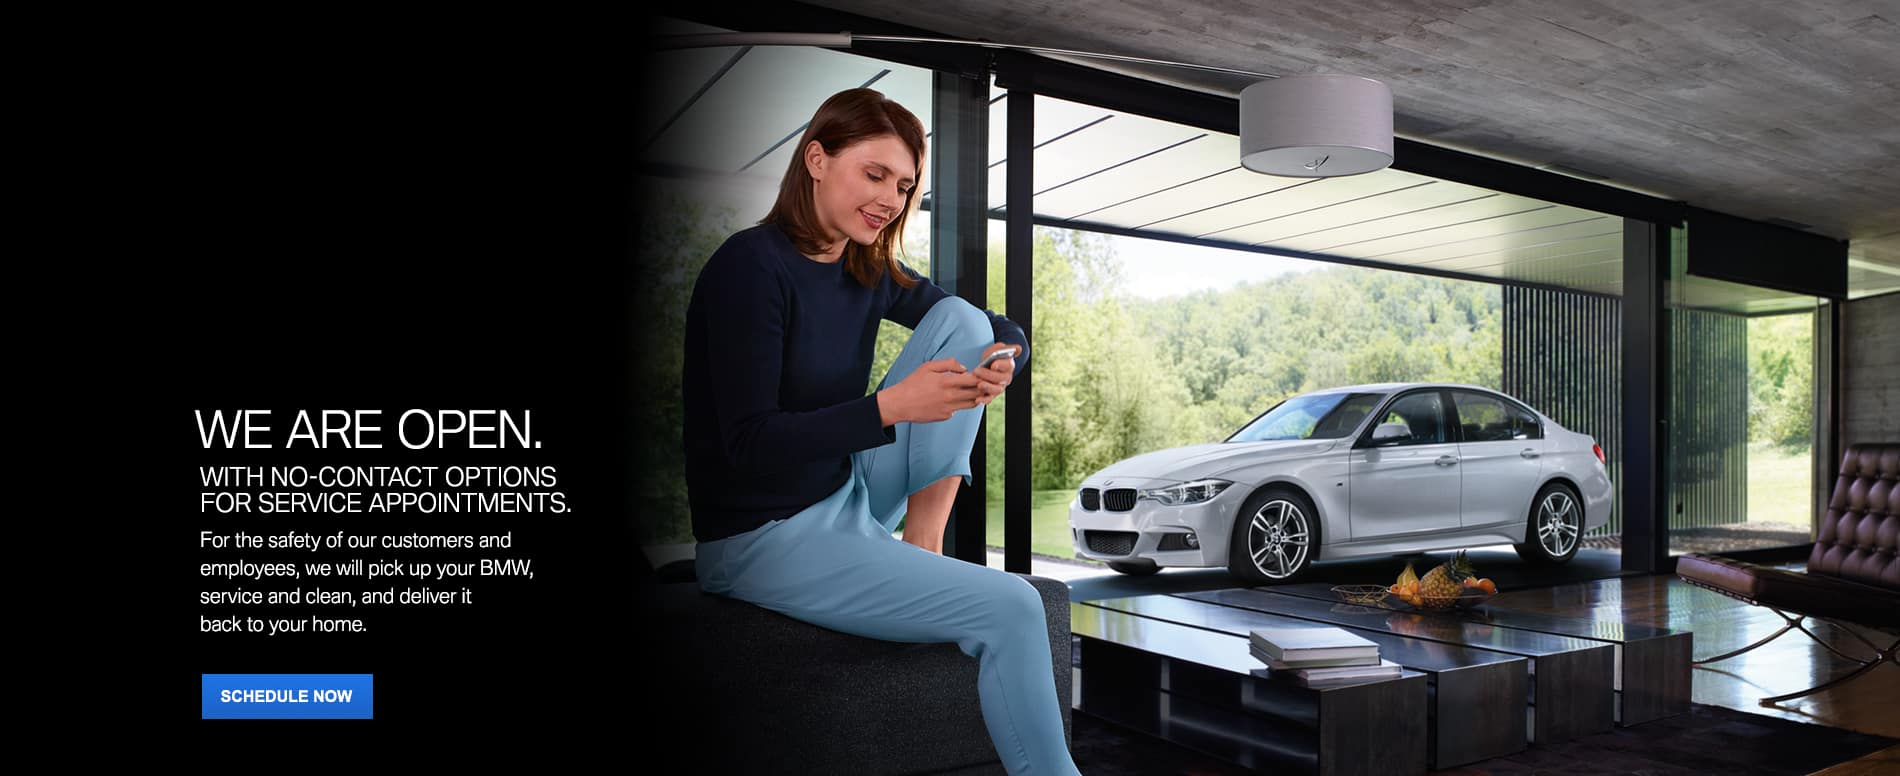 We are open | Circle BMW